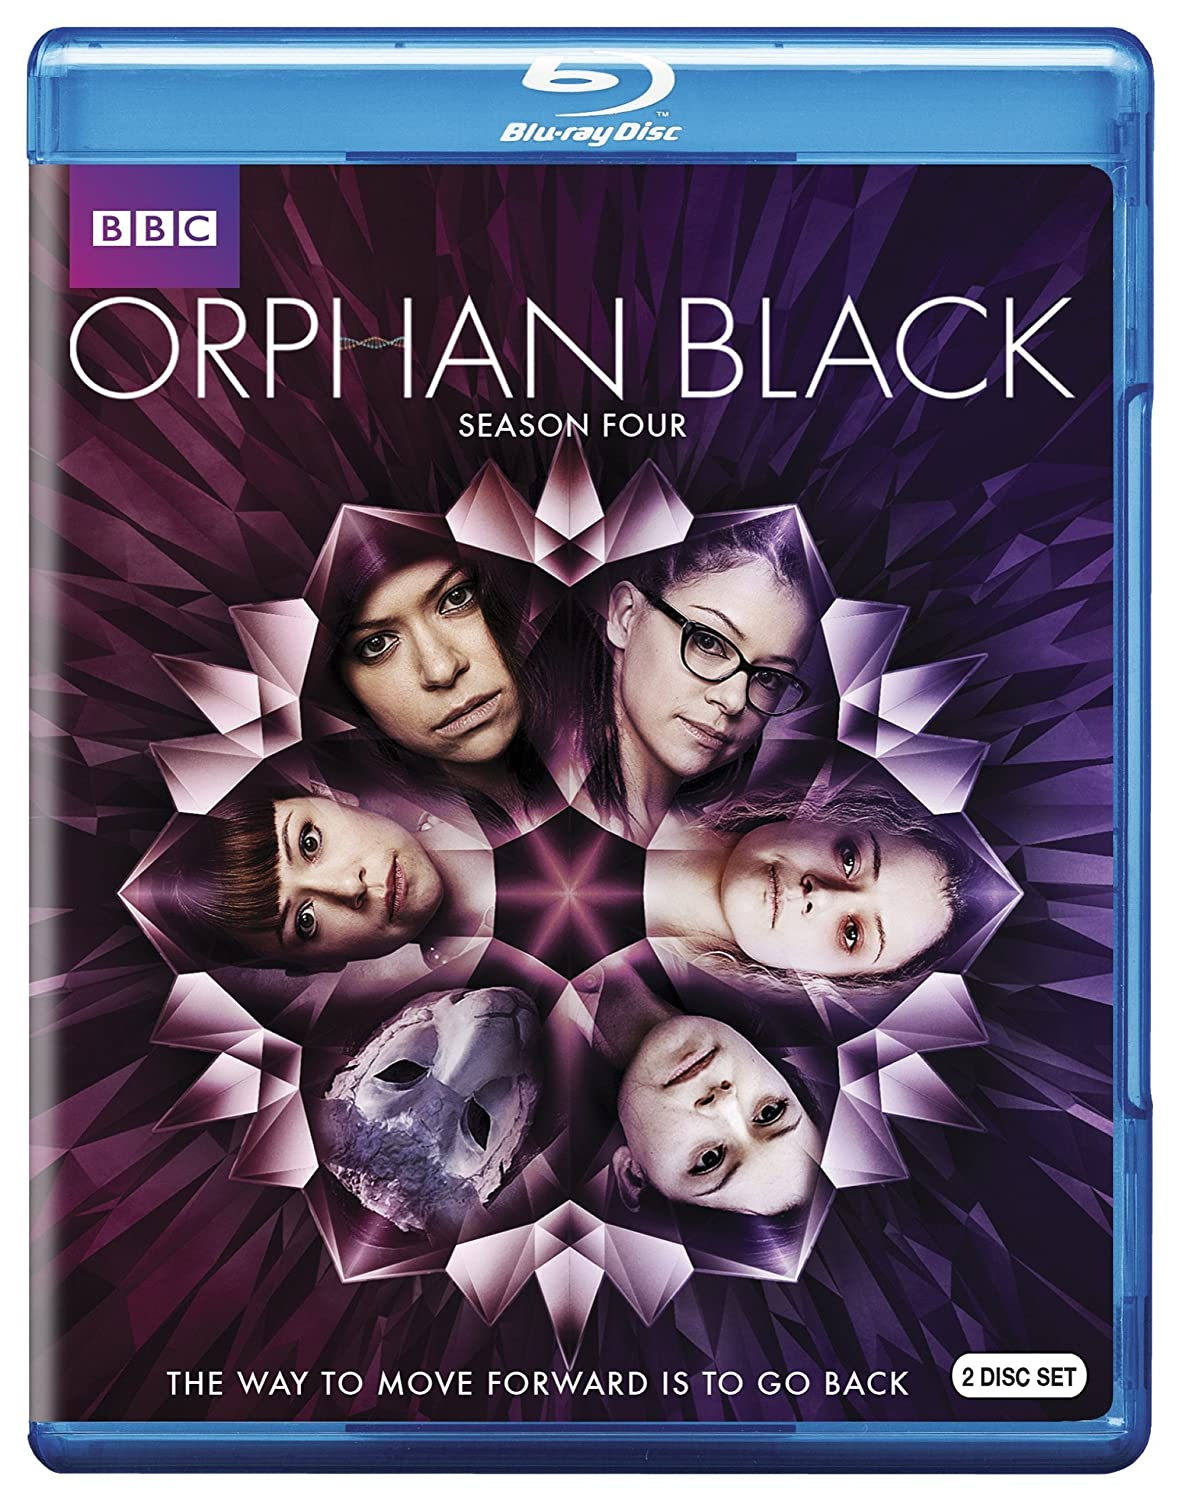 Orphan black t shirt uk - Amazon Com Orphan Black Season Four Blu Ray Tatiana Maslany Jordan Gavaris Maria Doyle Kennedy Kristian Bruun Kevin Hanchard John Fawcett Movies